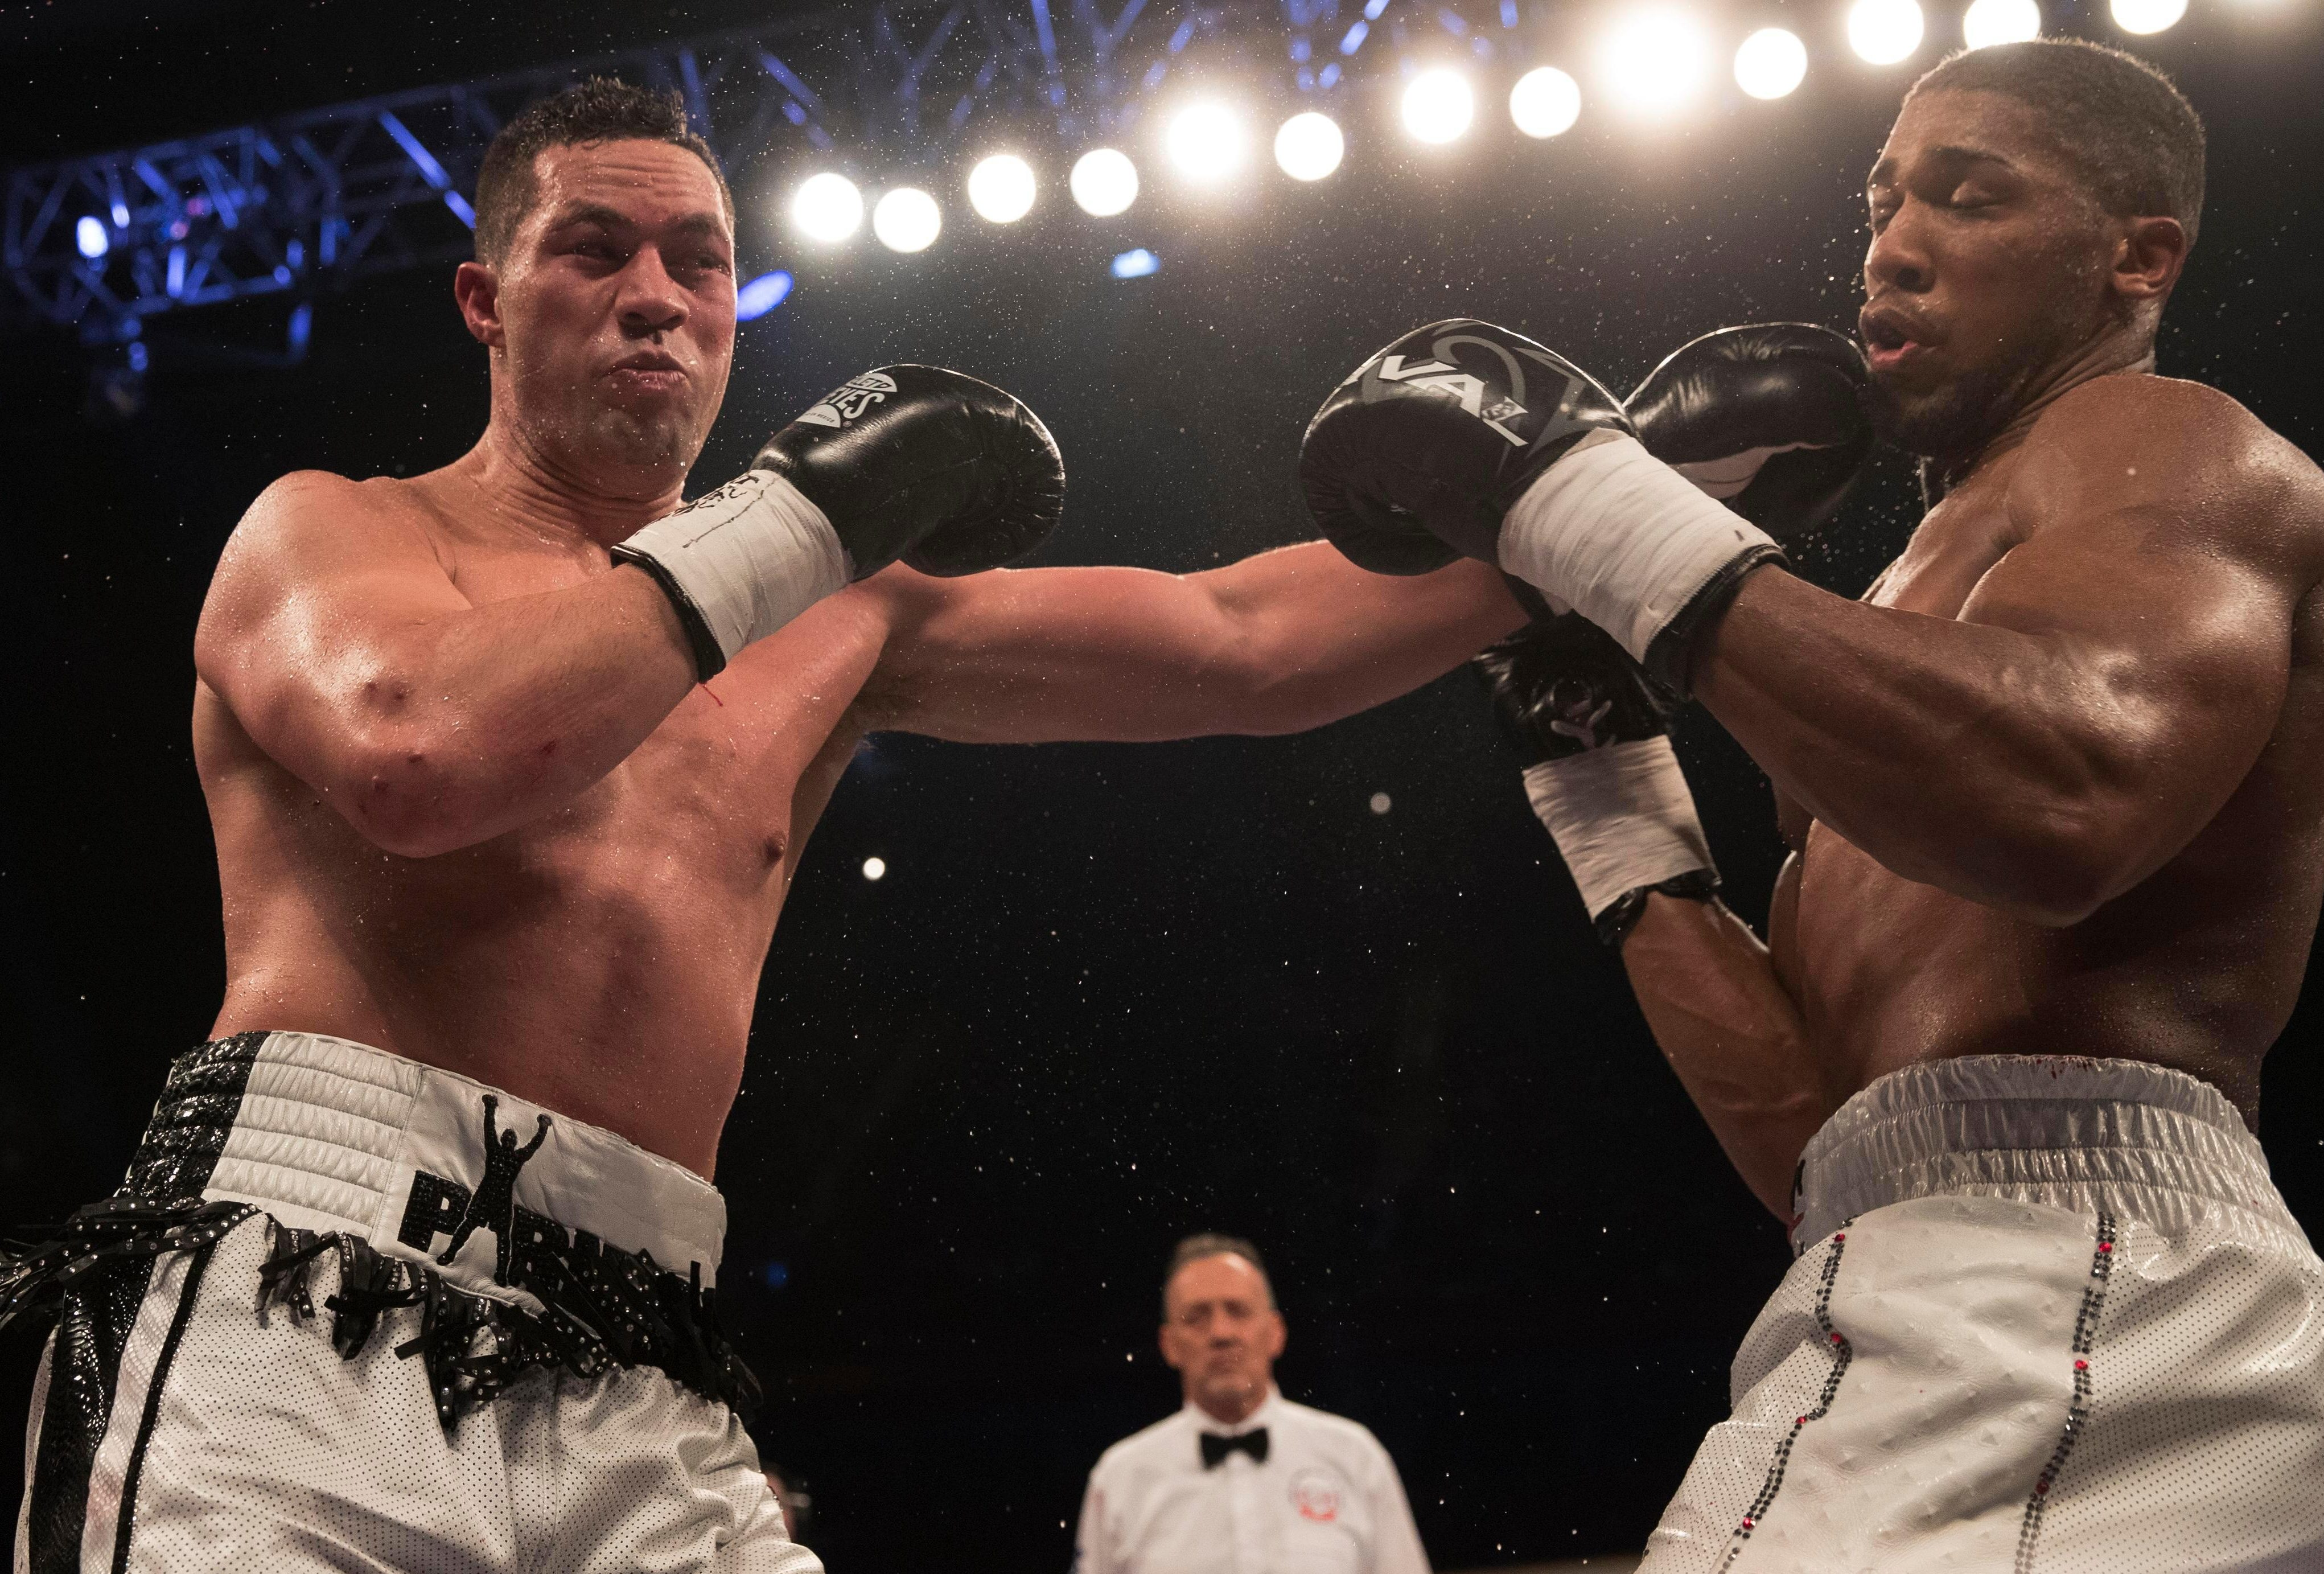 New Zealand ace Parker pocketed a reported £6million following his bout with Joshua